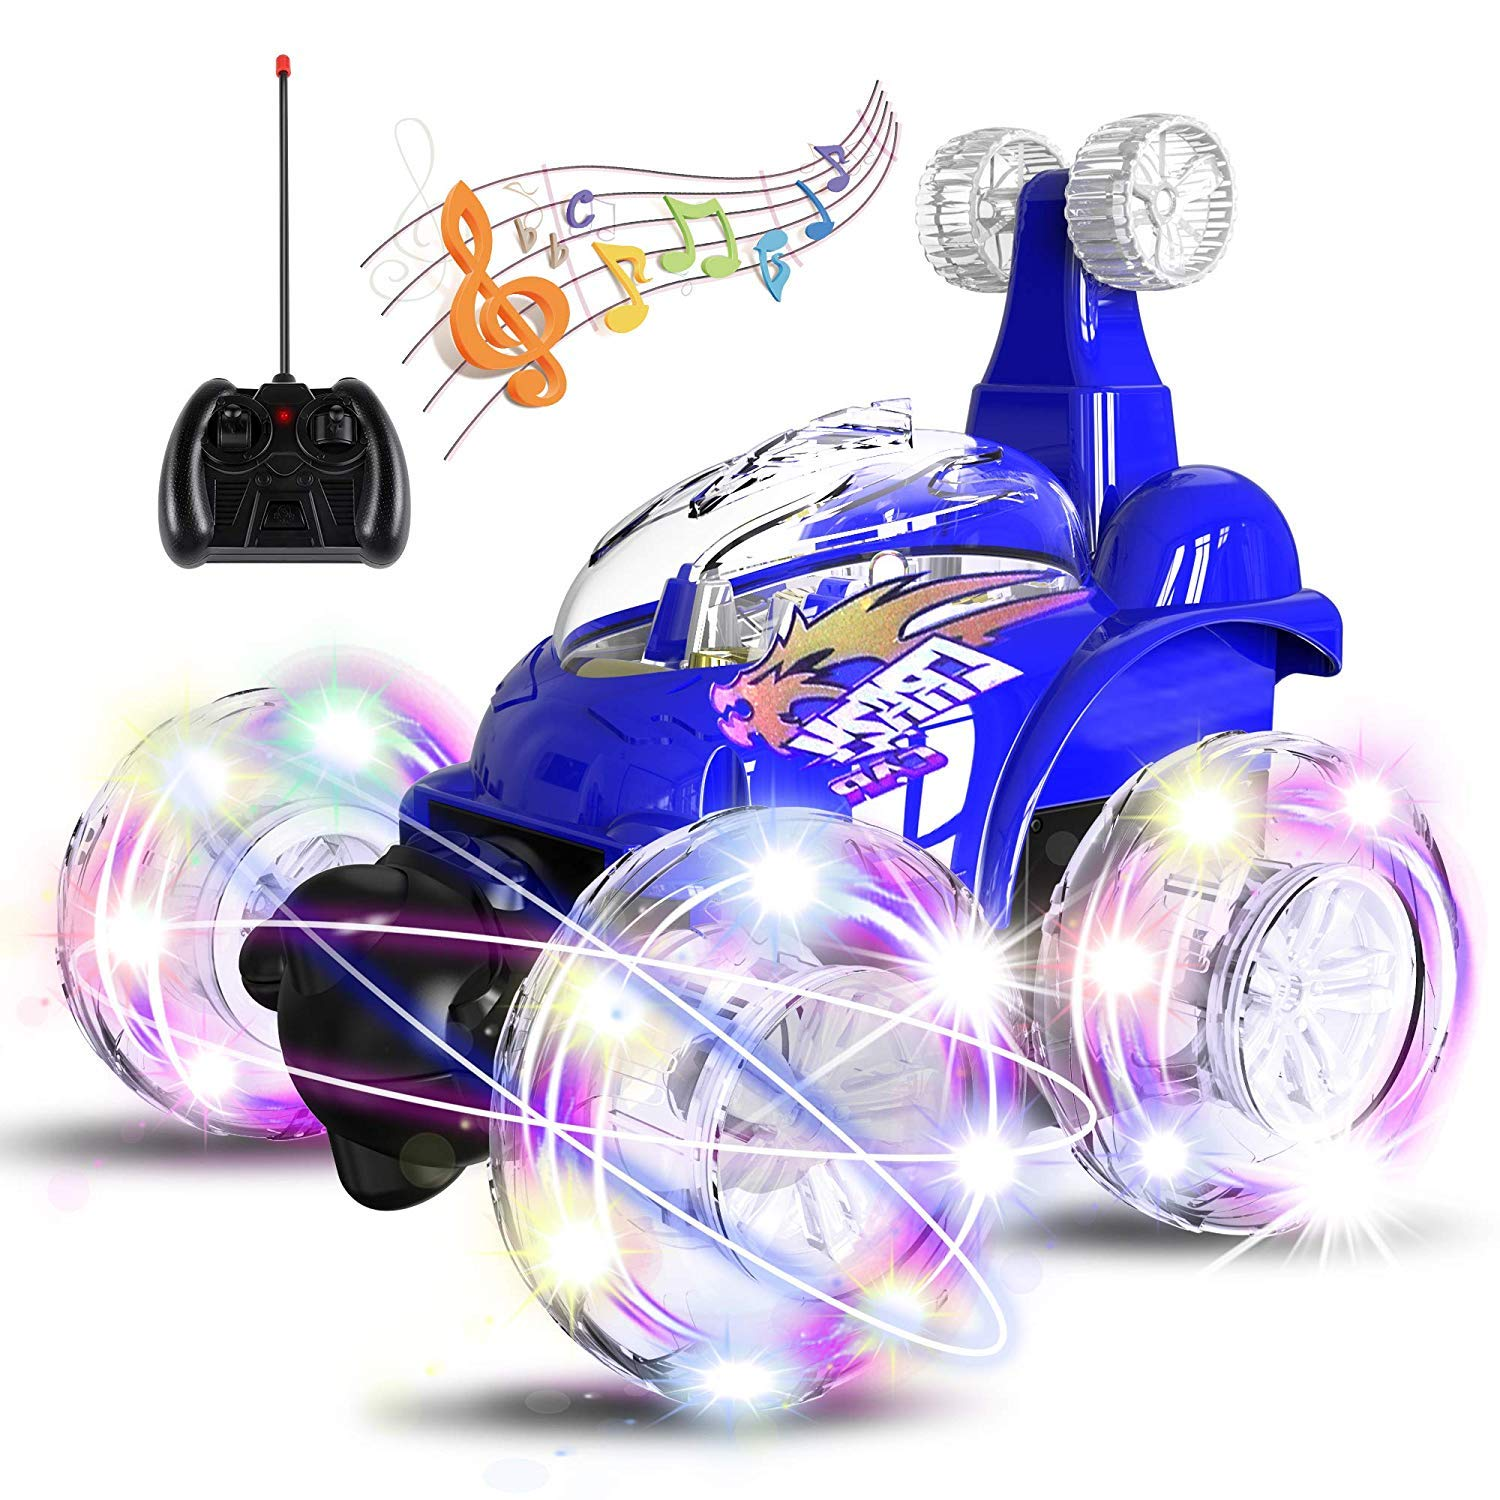 UTTORA Remote Control Car, RC Stunt Car Invincible Tornado Twister Remote Control Rechargeable Vehicle with Colorful Lights & Music Switch for Kids (Blue)